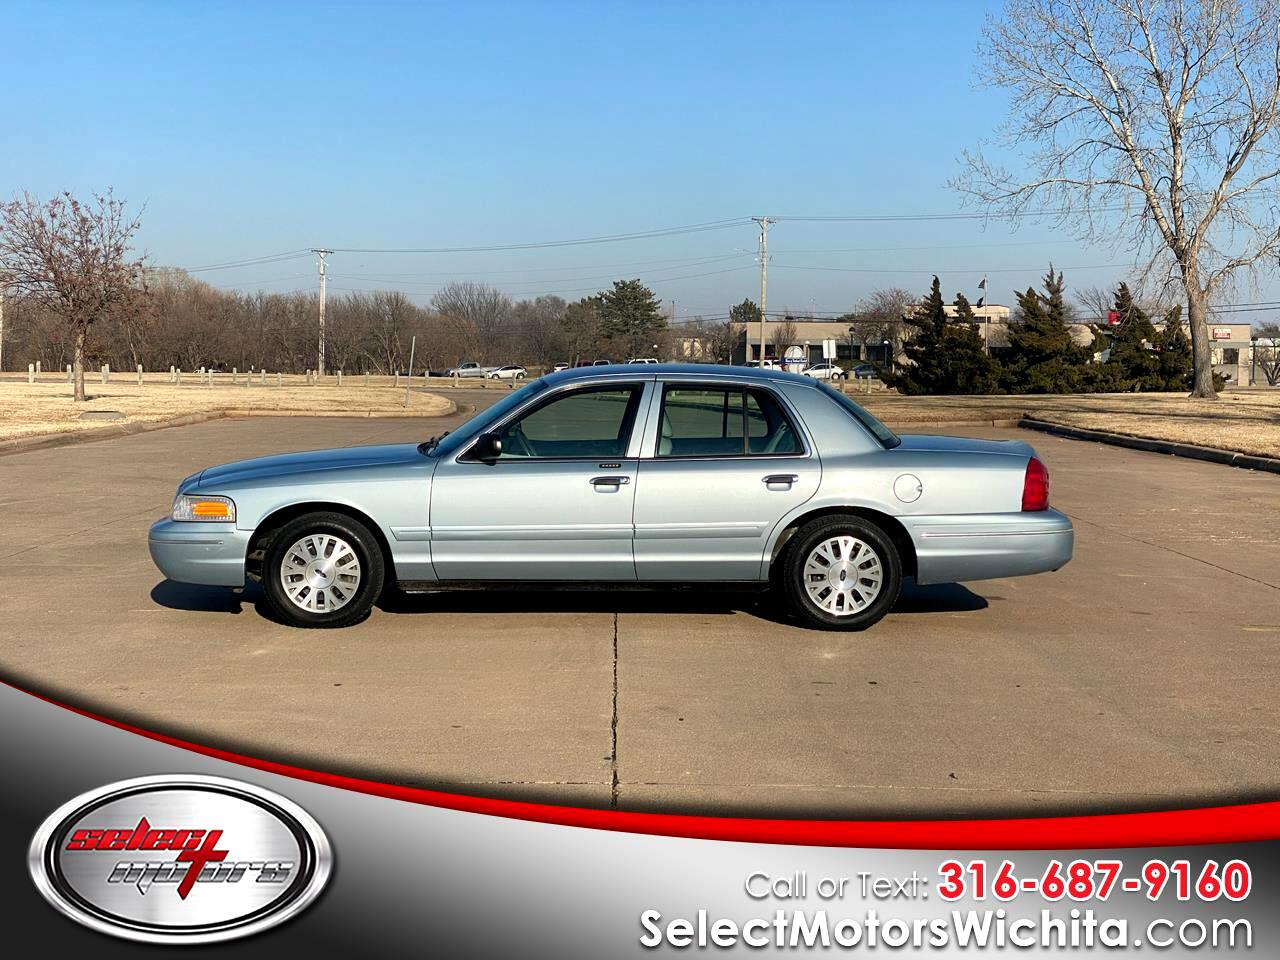 Ford Crown Victoria 4dr Sdn LX 2004